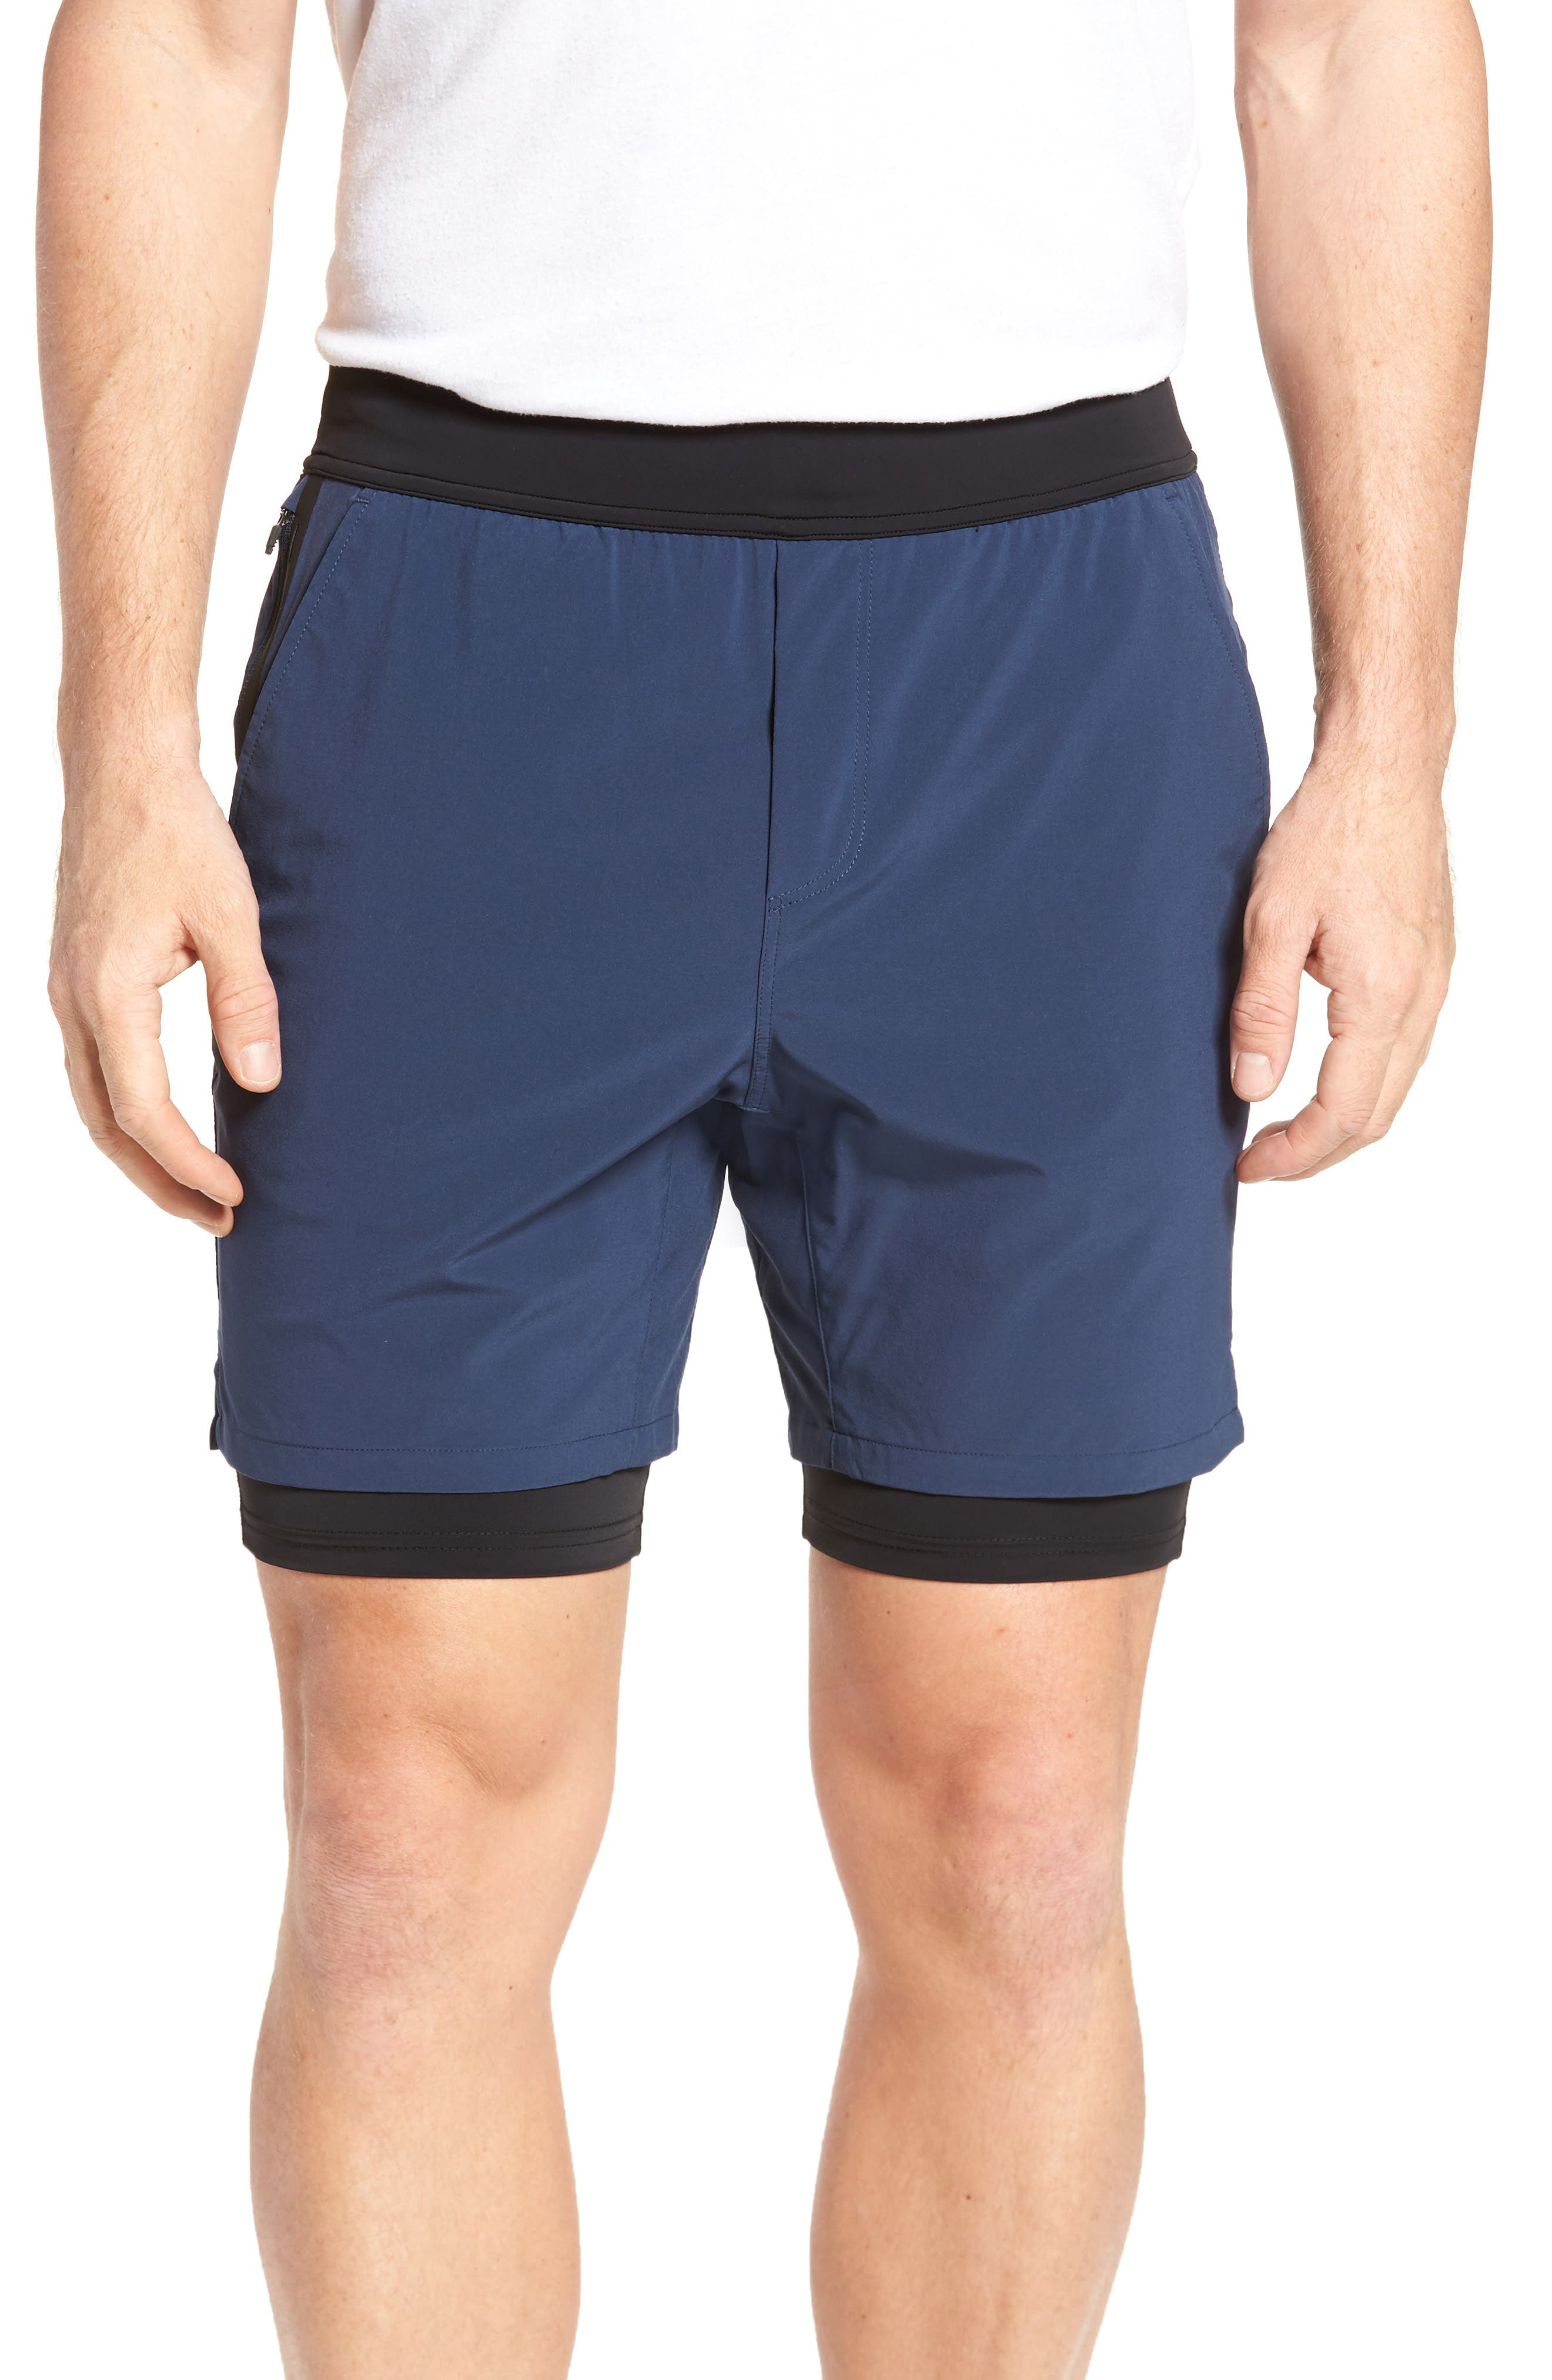 Ten Thousand Interval Athletic Shorts